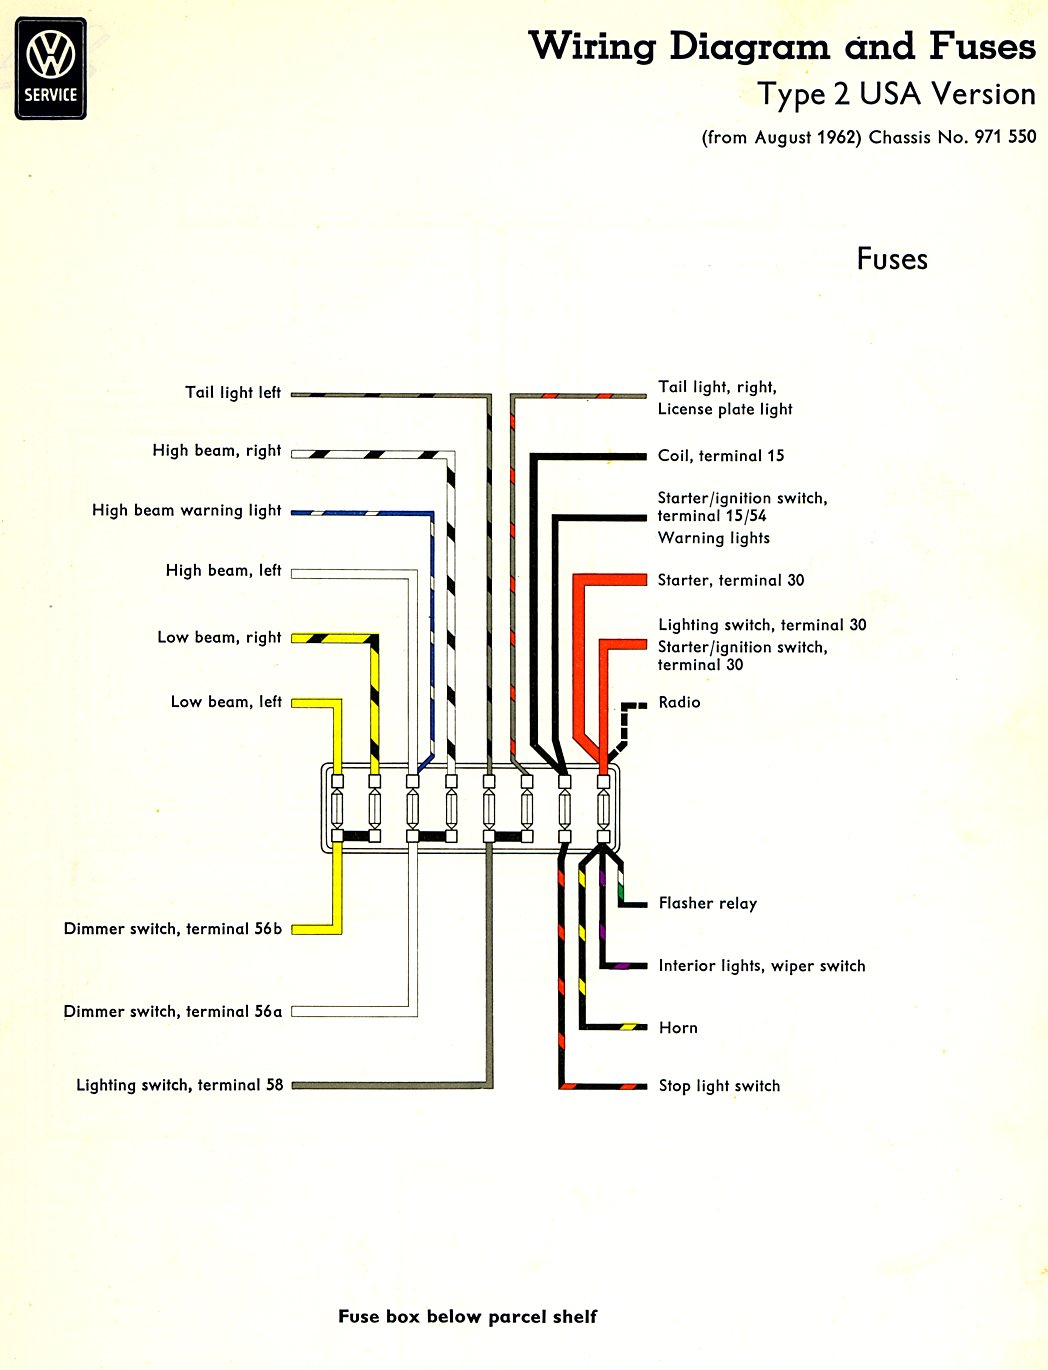 Type 2 Wiring Diagrams 1971 Super Beetle Fuse Box